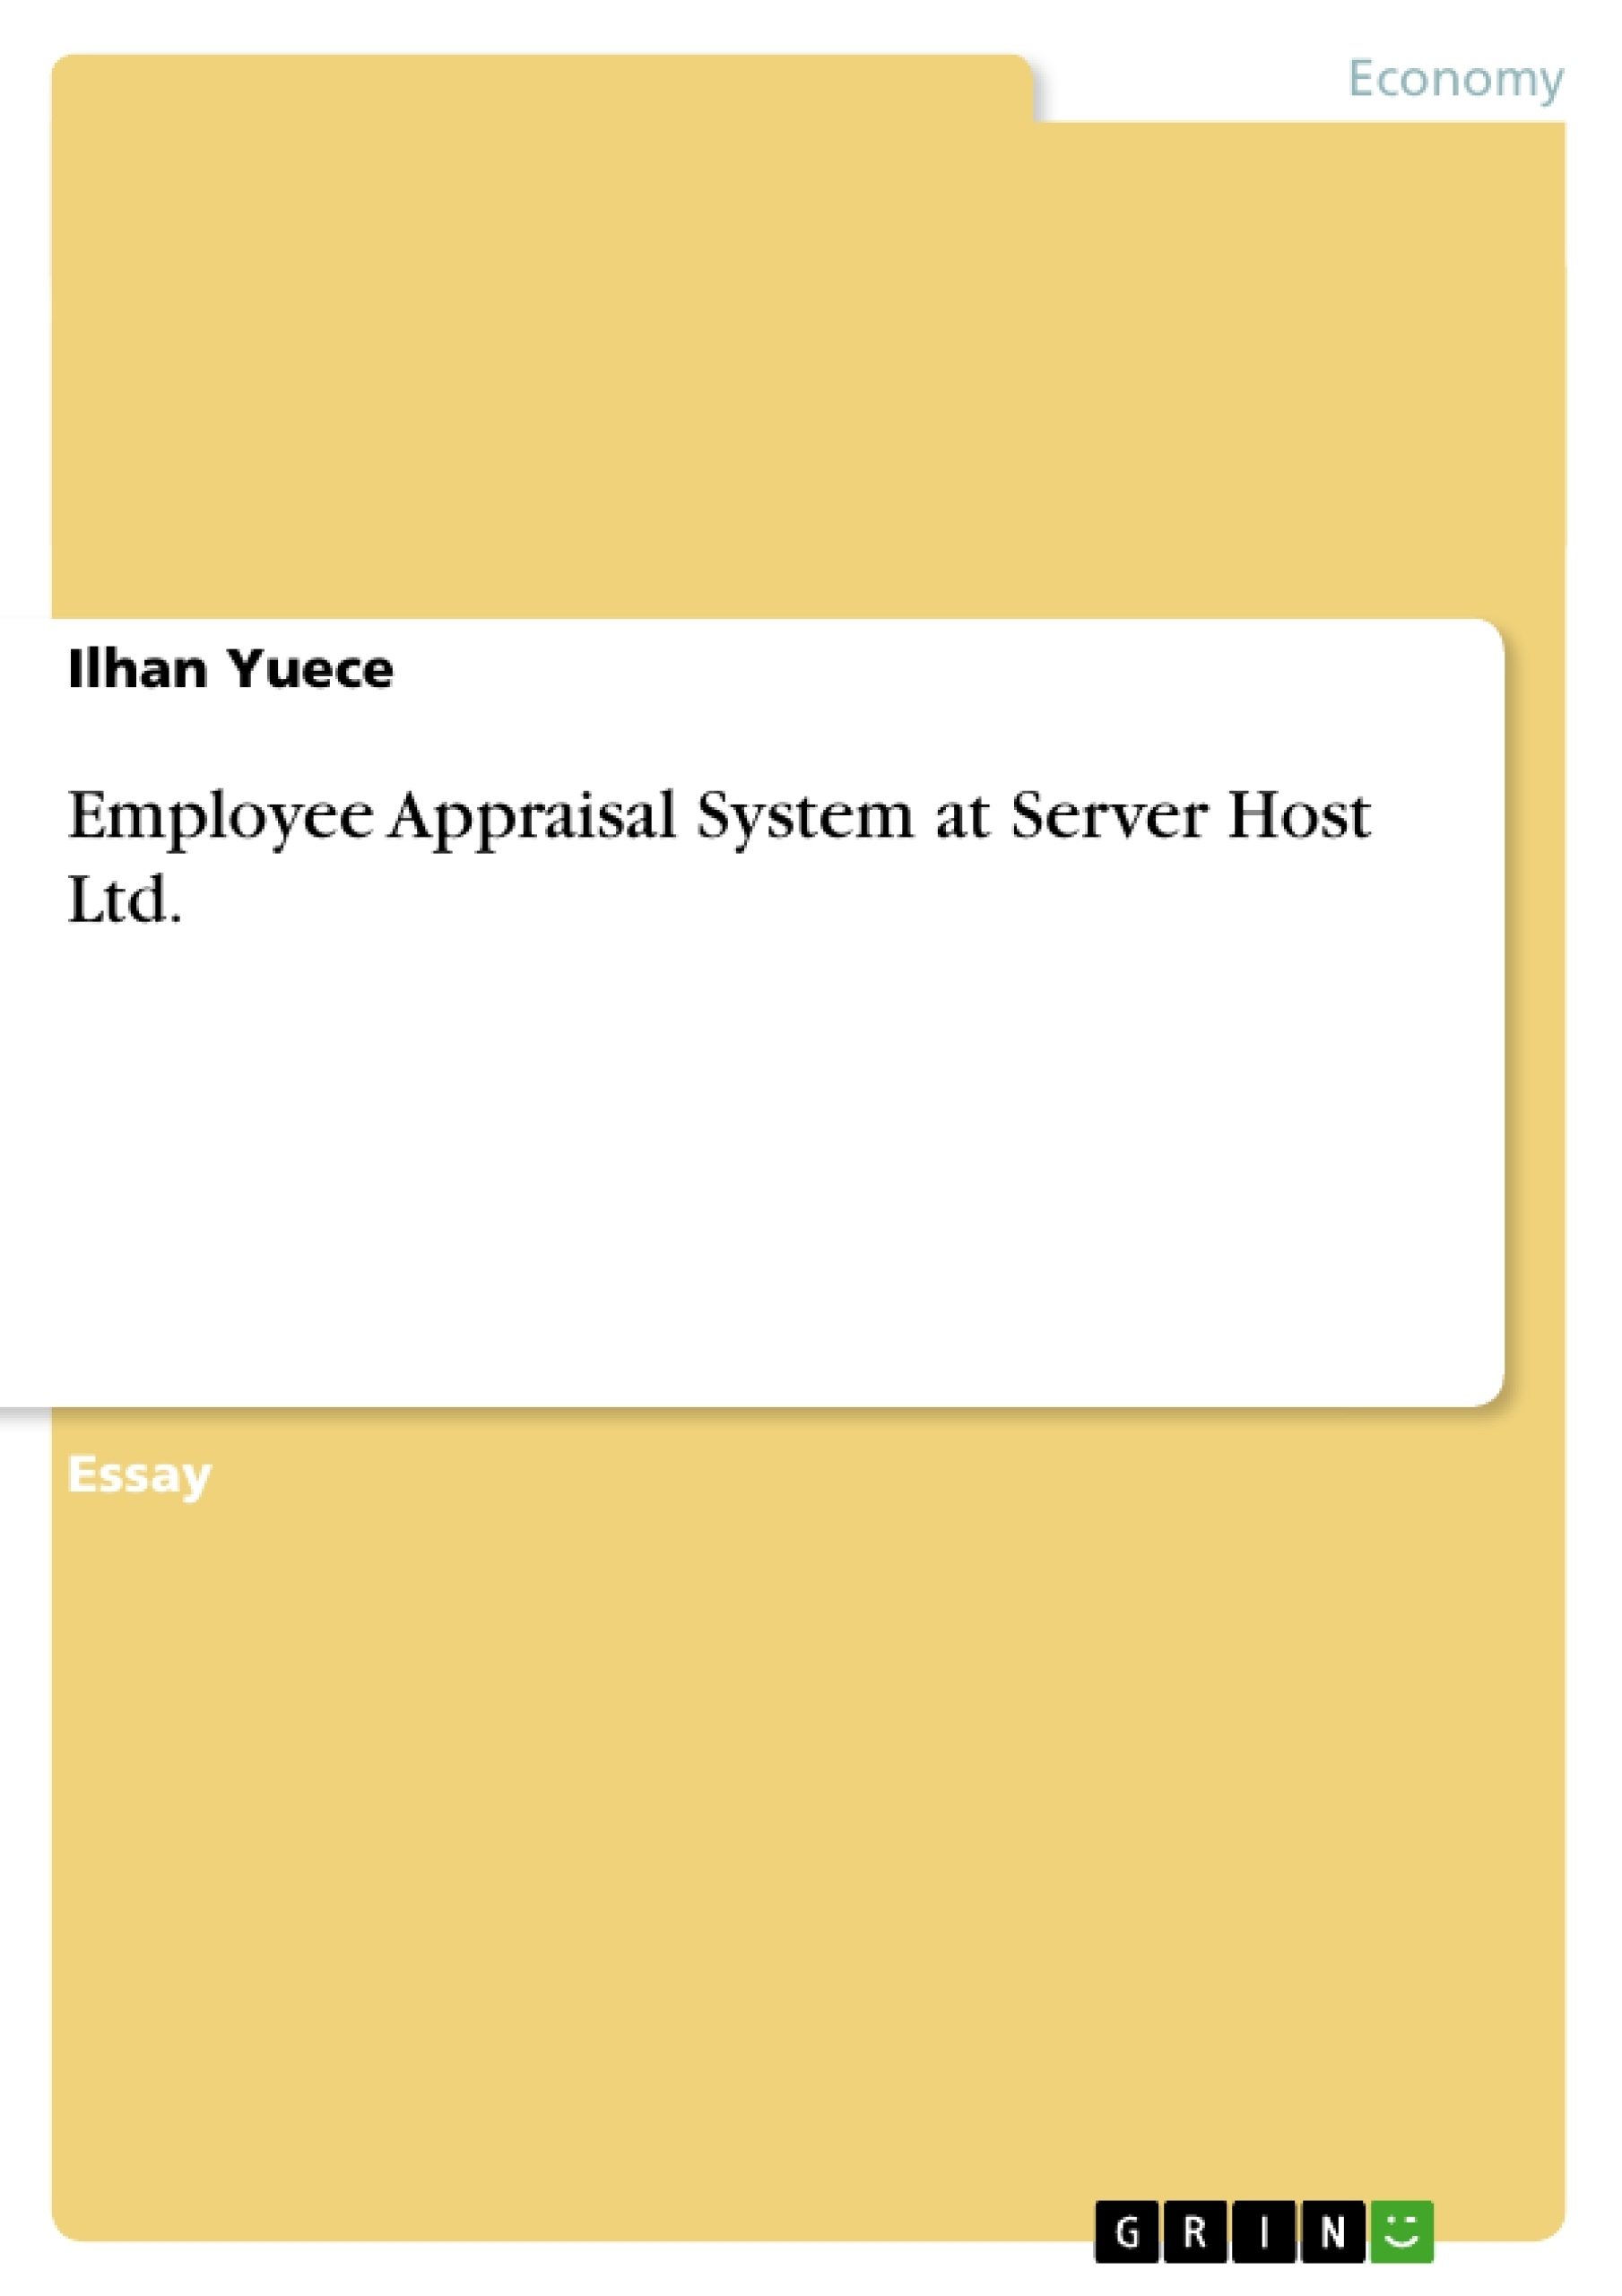 Title: Employee Appraisal System at Server Host Ltd.